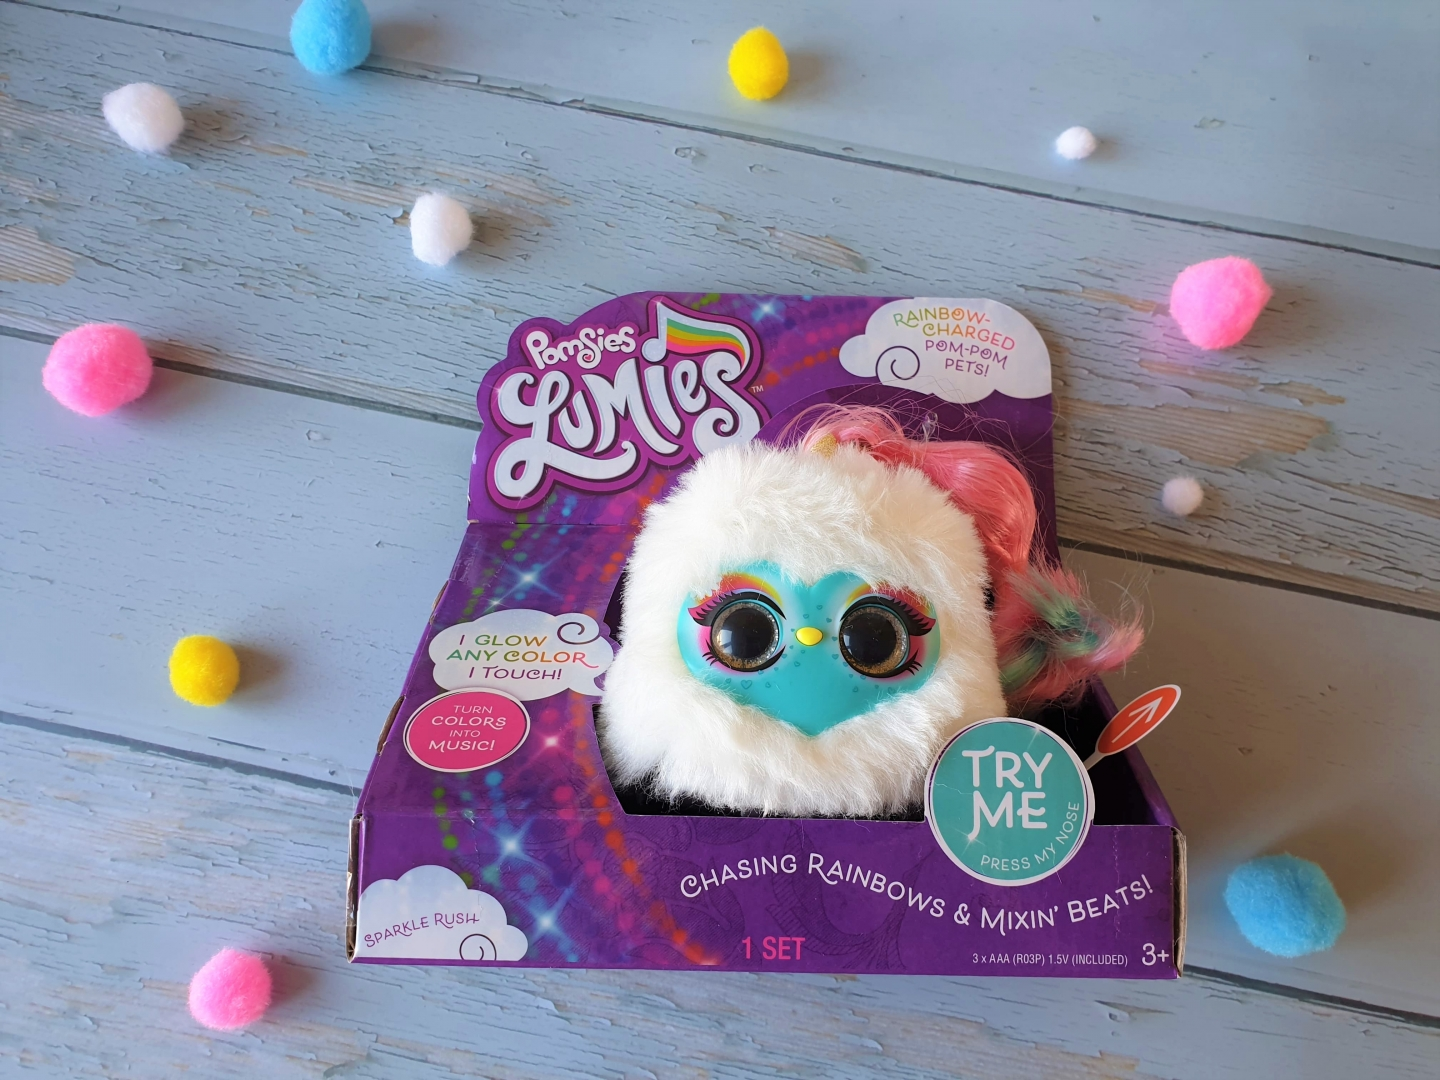 Pomsies Lumies Sparkle Rush review